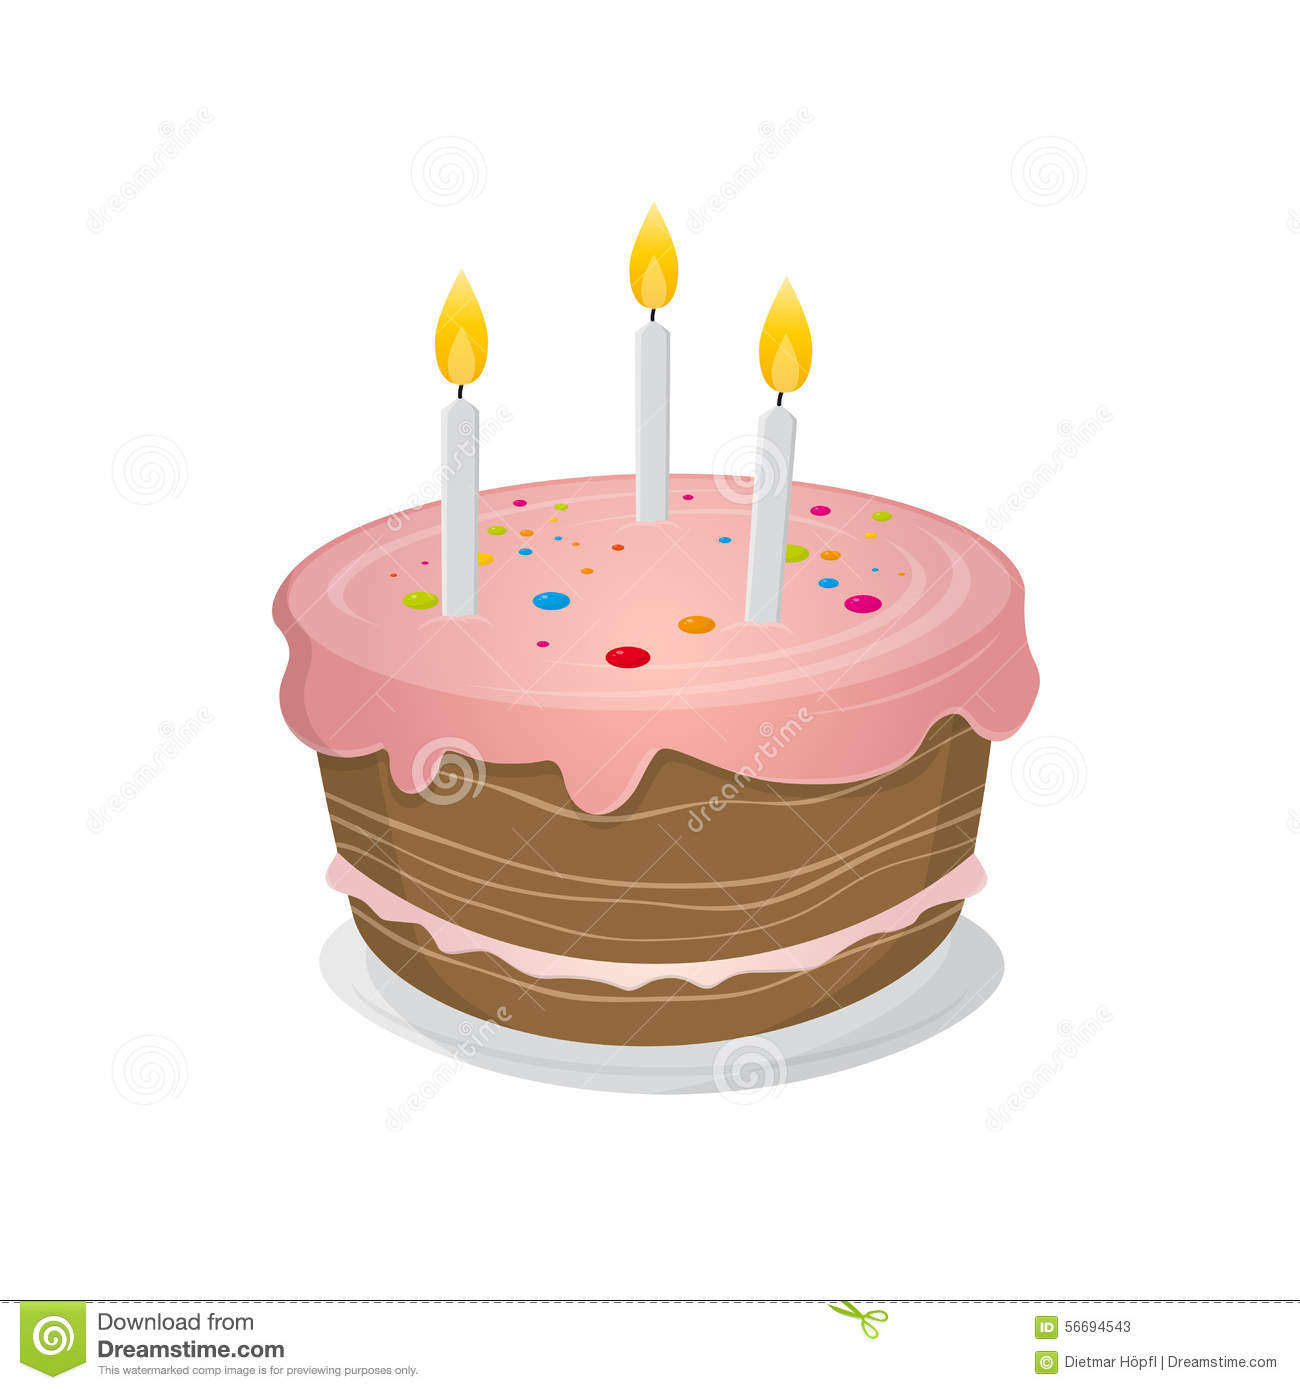 Pictures Of Birthday Cakes Drawings : Isolated Birthday Cake Illustration Stock Vector - Image ...